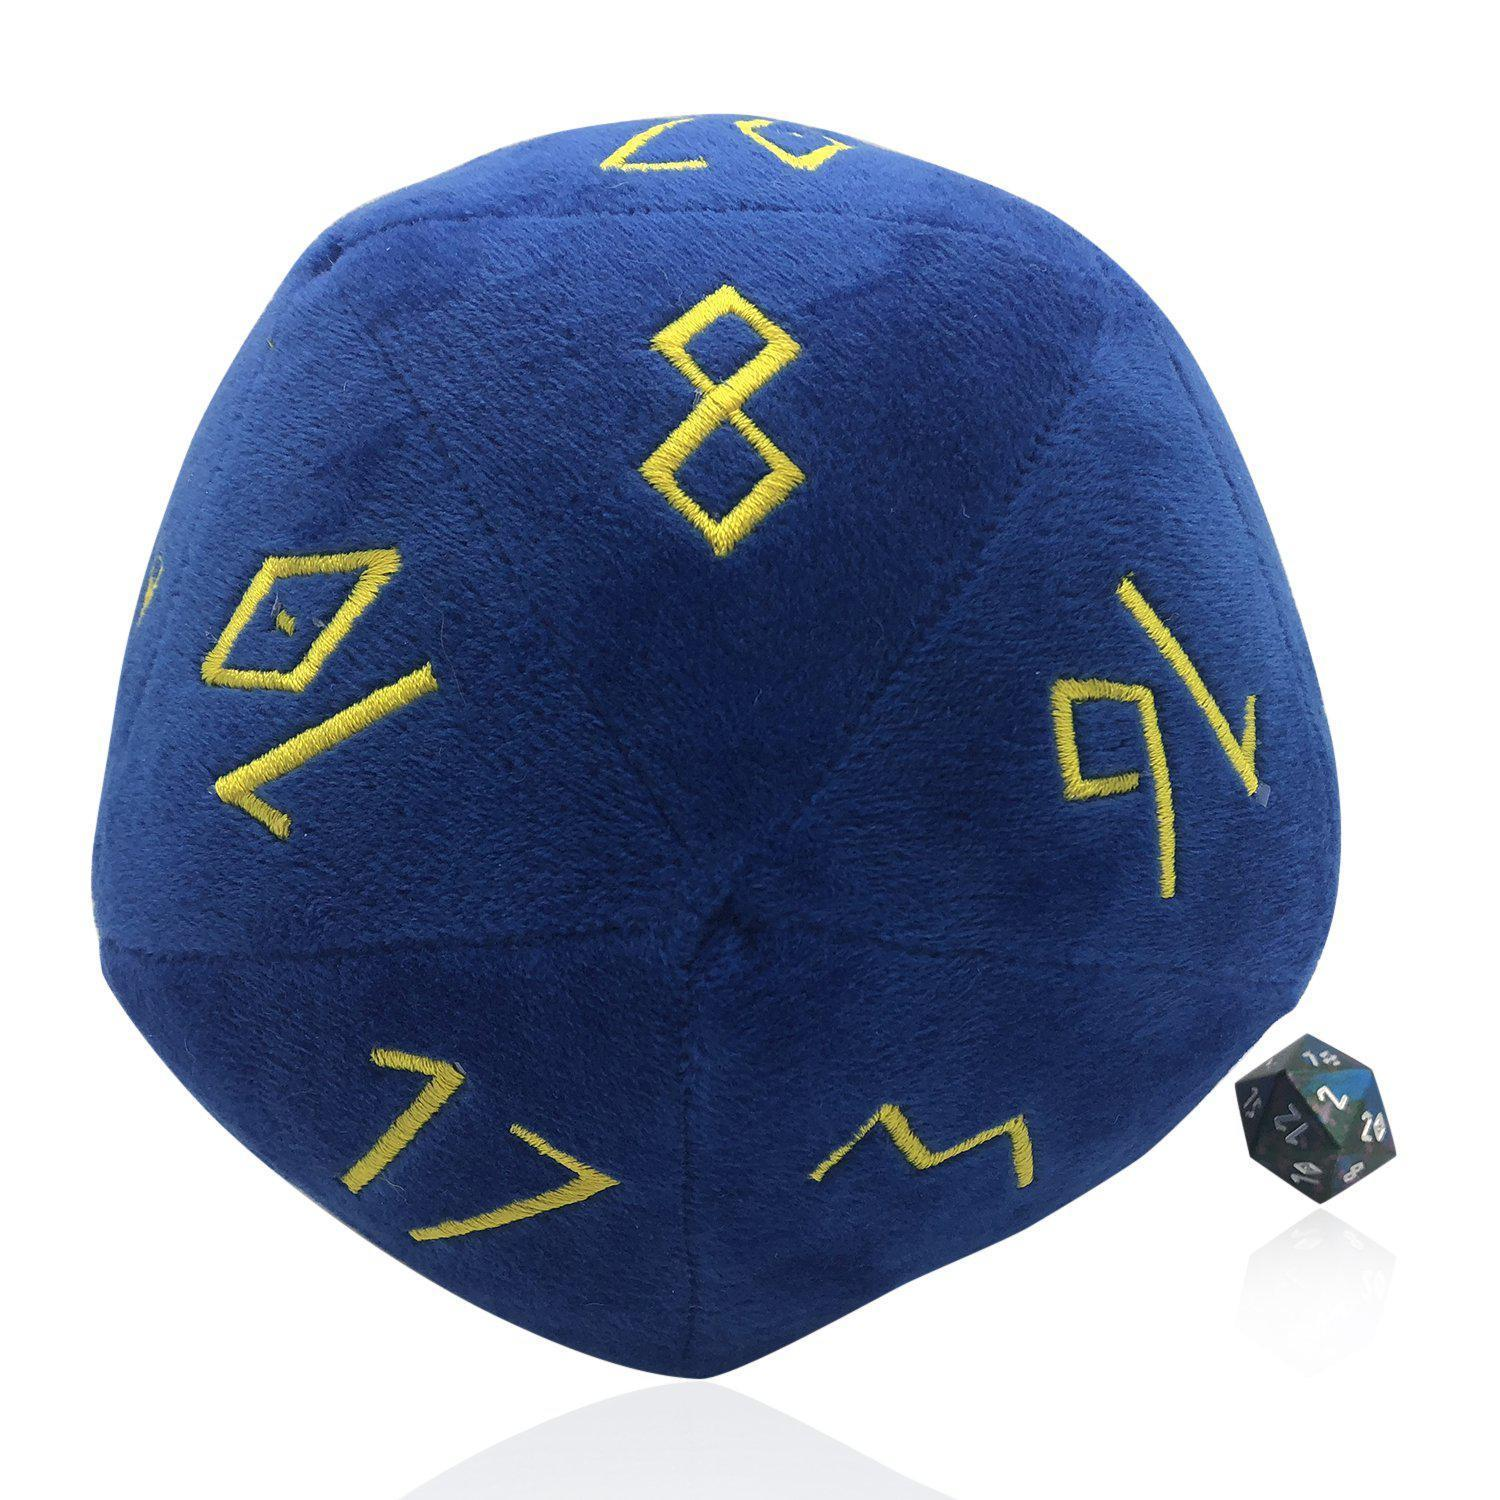 Noble Blue Plushie Boulder 170mm D20 Plush Soft Dice-Dice-Norse Foundry-DND Dice-Polyhedral Dice-D20-Metal Dice-Precision Dice-Luxury Dice-Dungeons and Dragons-D&D-